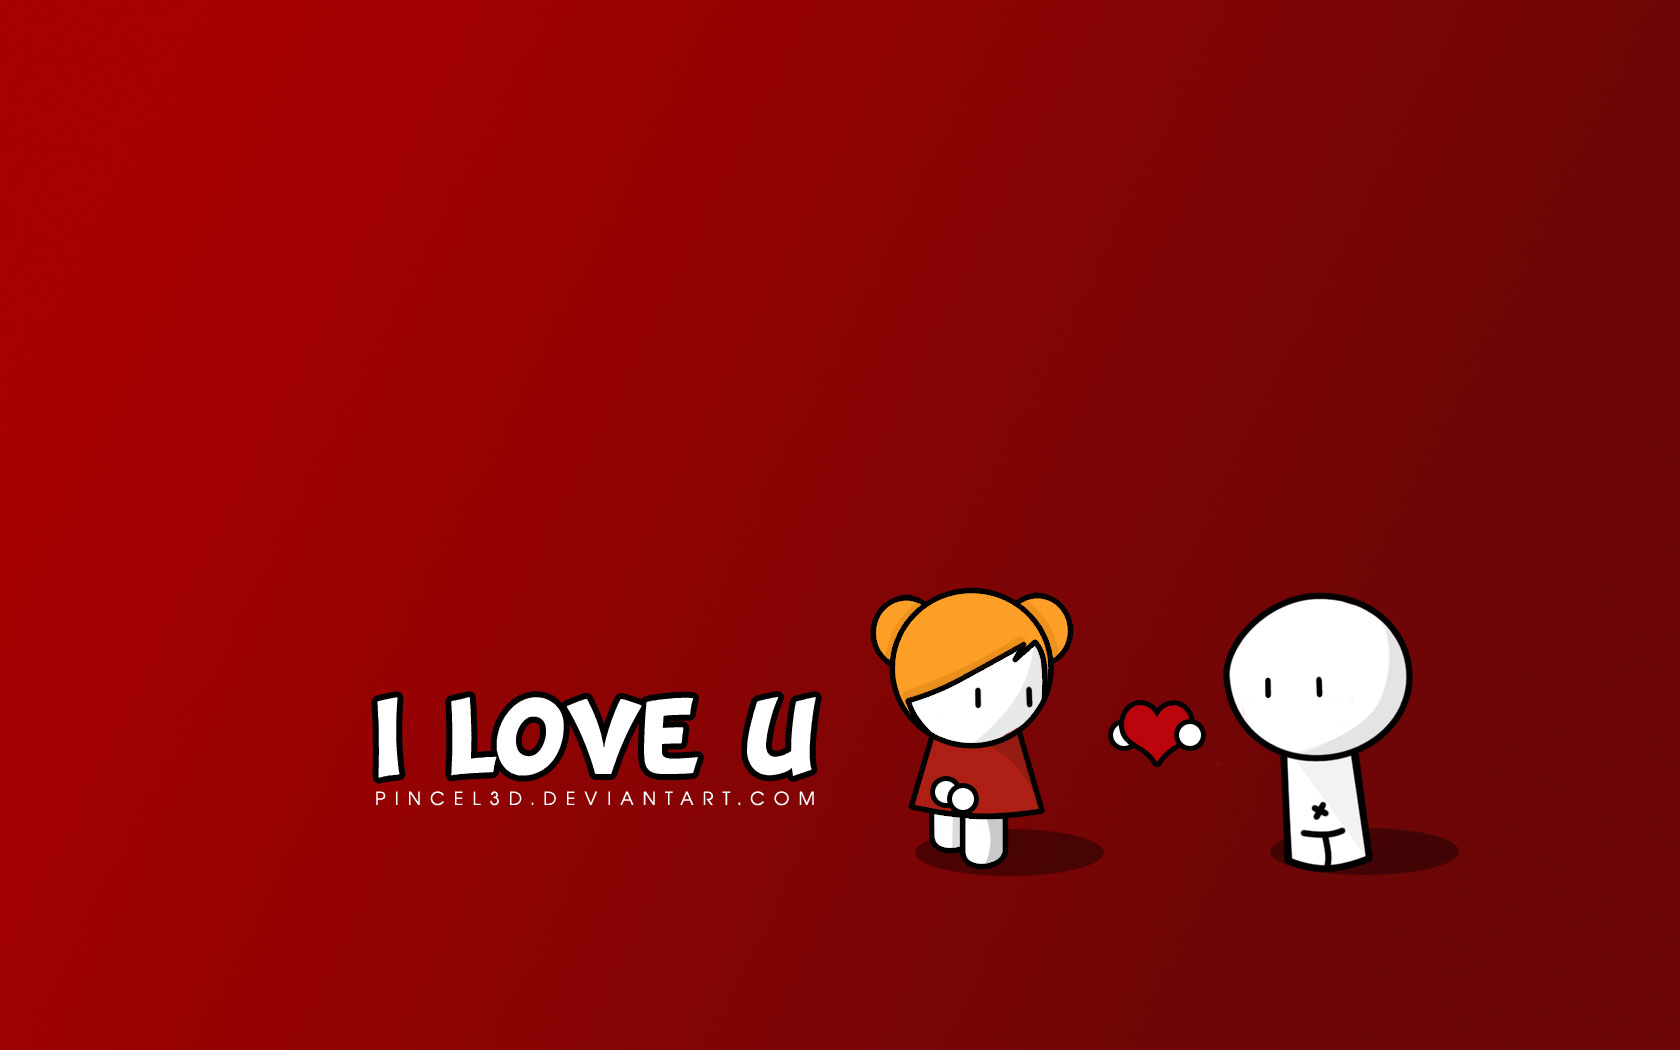 Love Wallpaper Hd Desktop : I Love You Wallpapers HD A40 - HD Desktop Wallpapers 4k HD